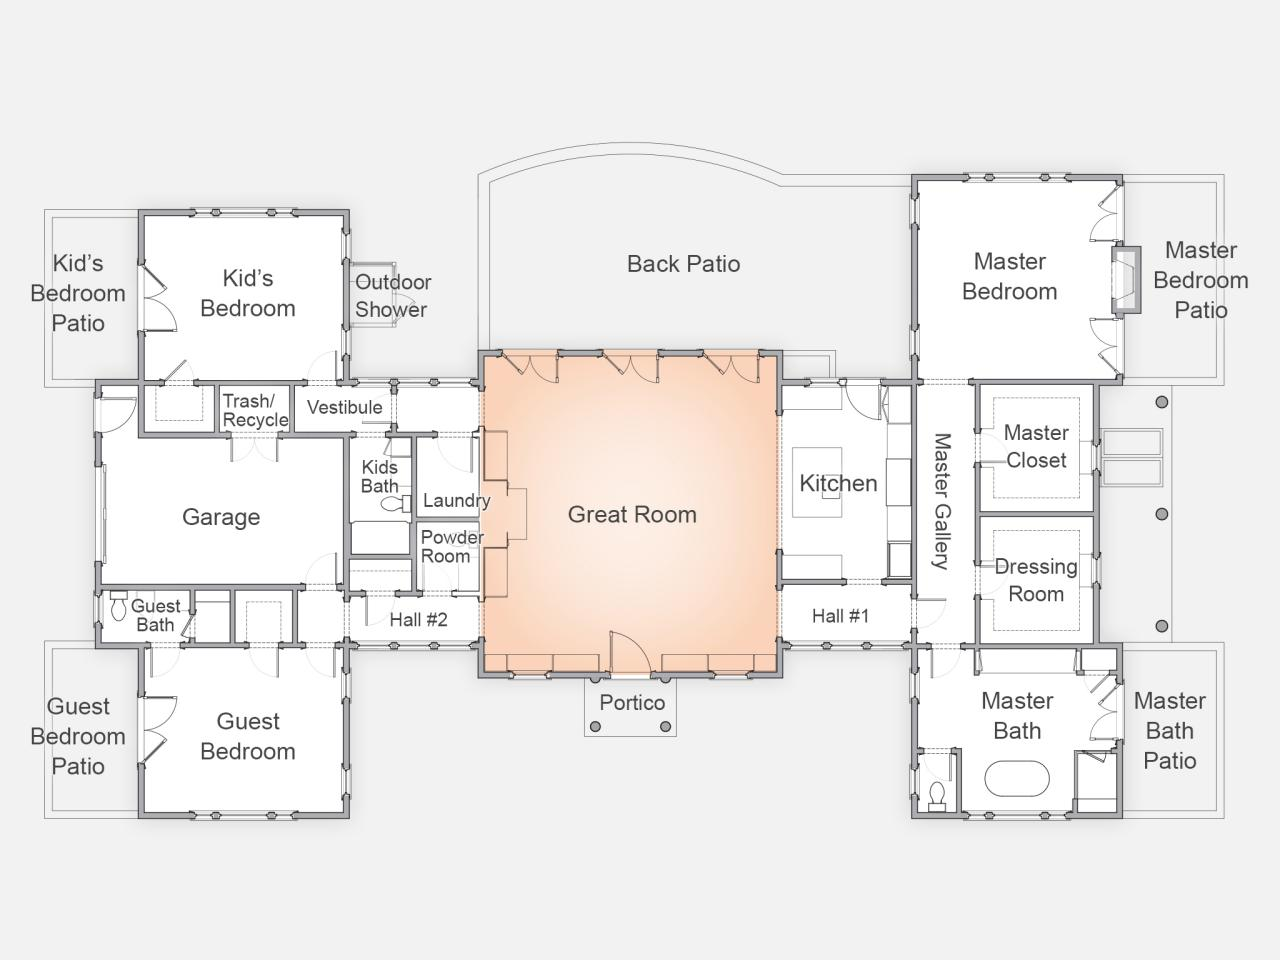 hgtv dream home 2015 floor plan building hgtv dream home